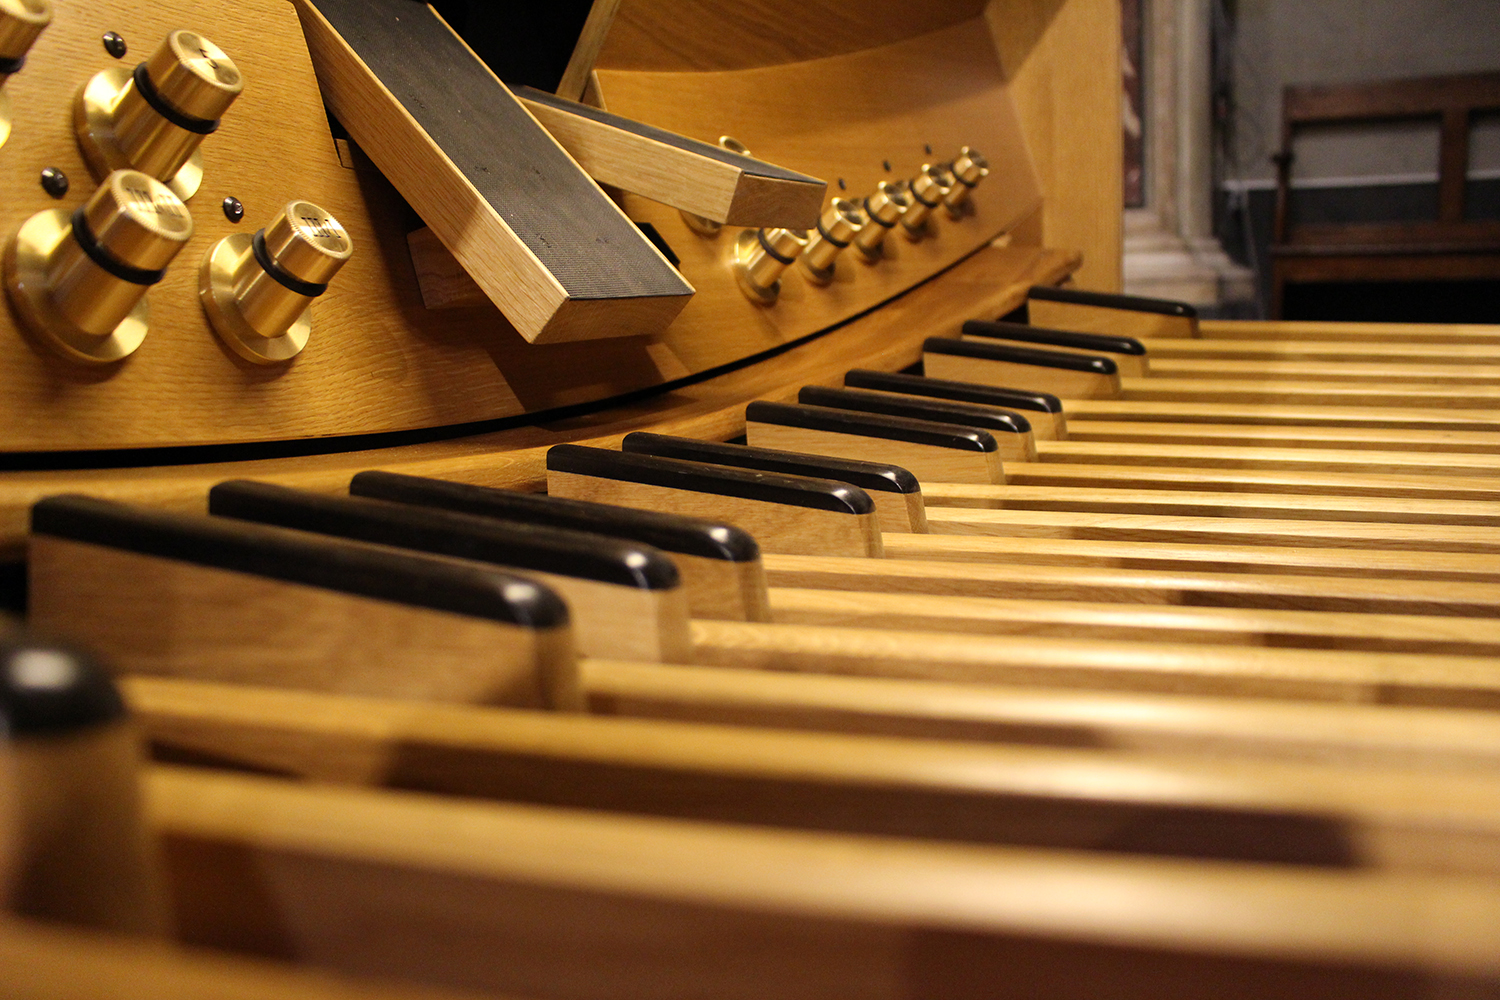 Artisans at the service of music and liturgy